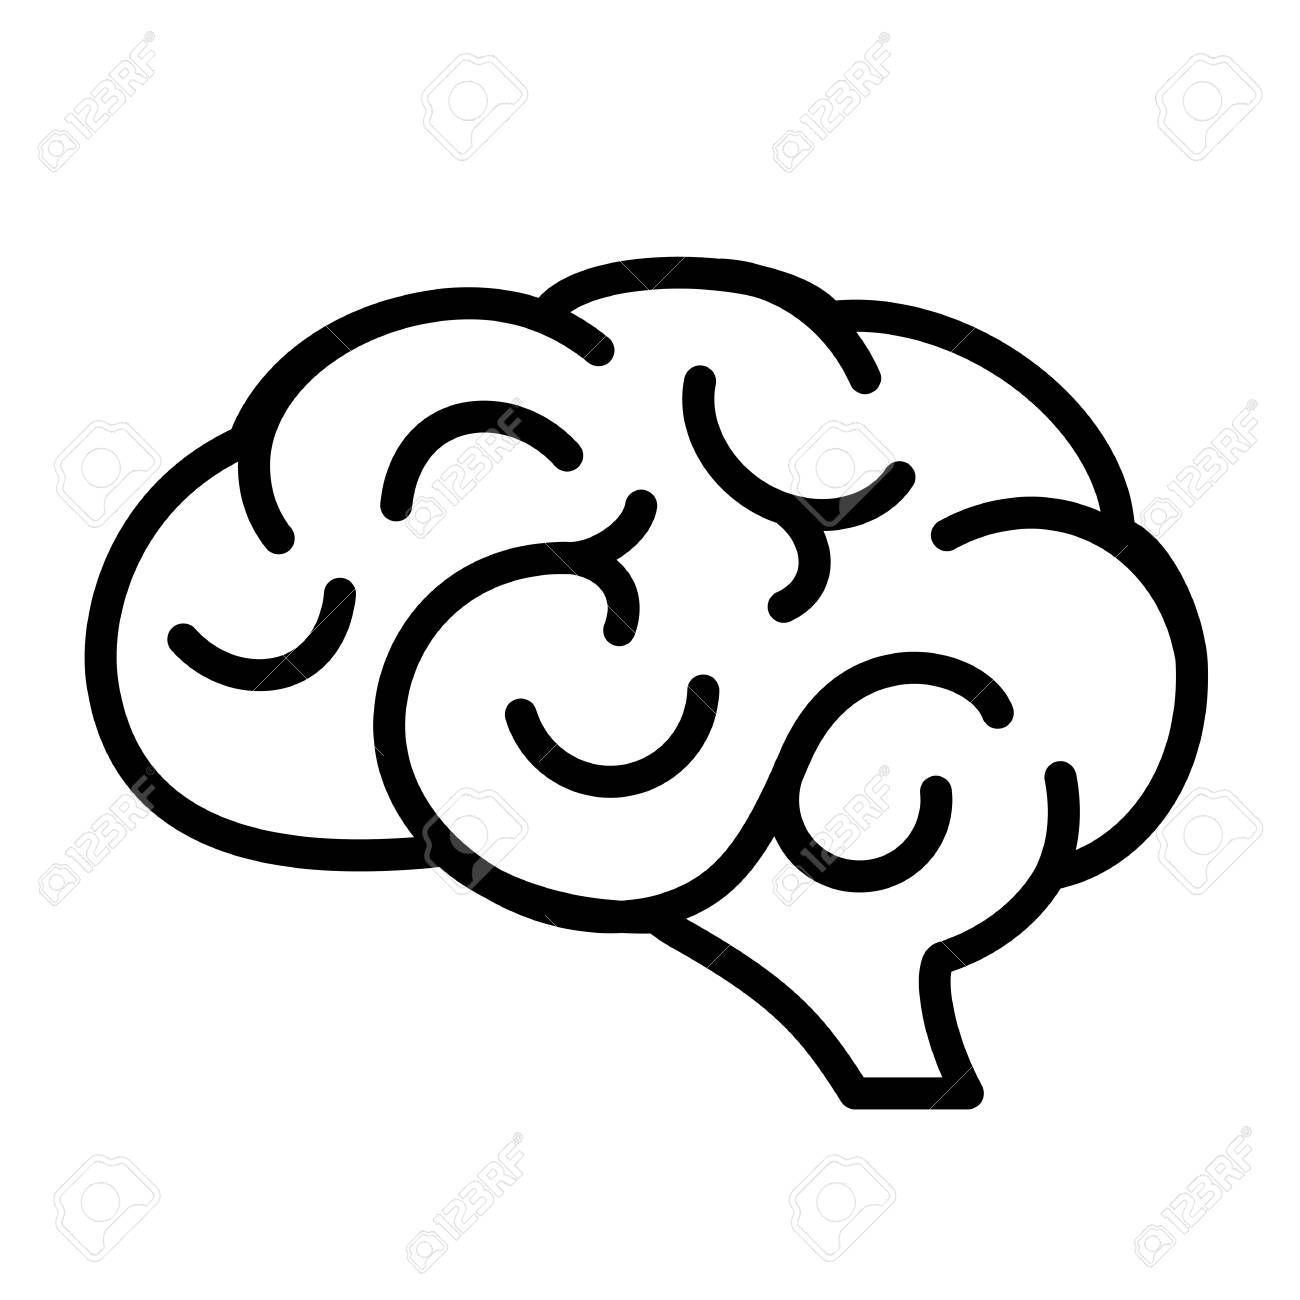 Image Result For Brain Icon